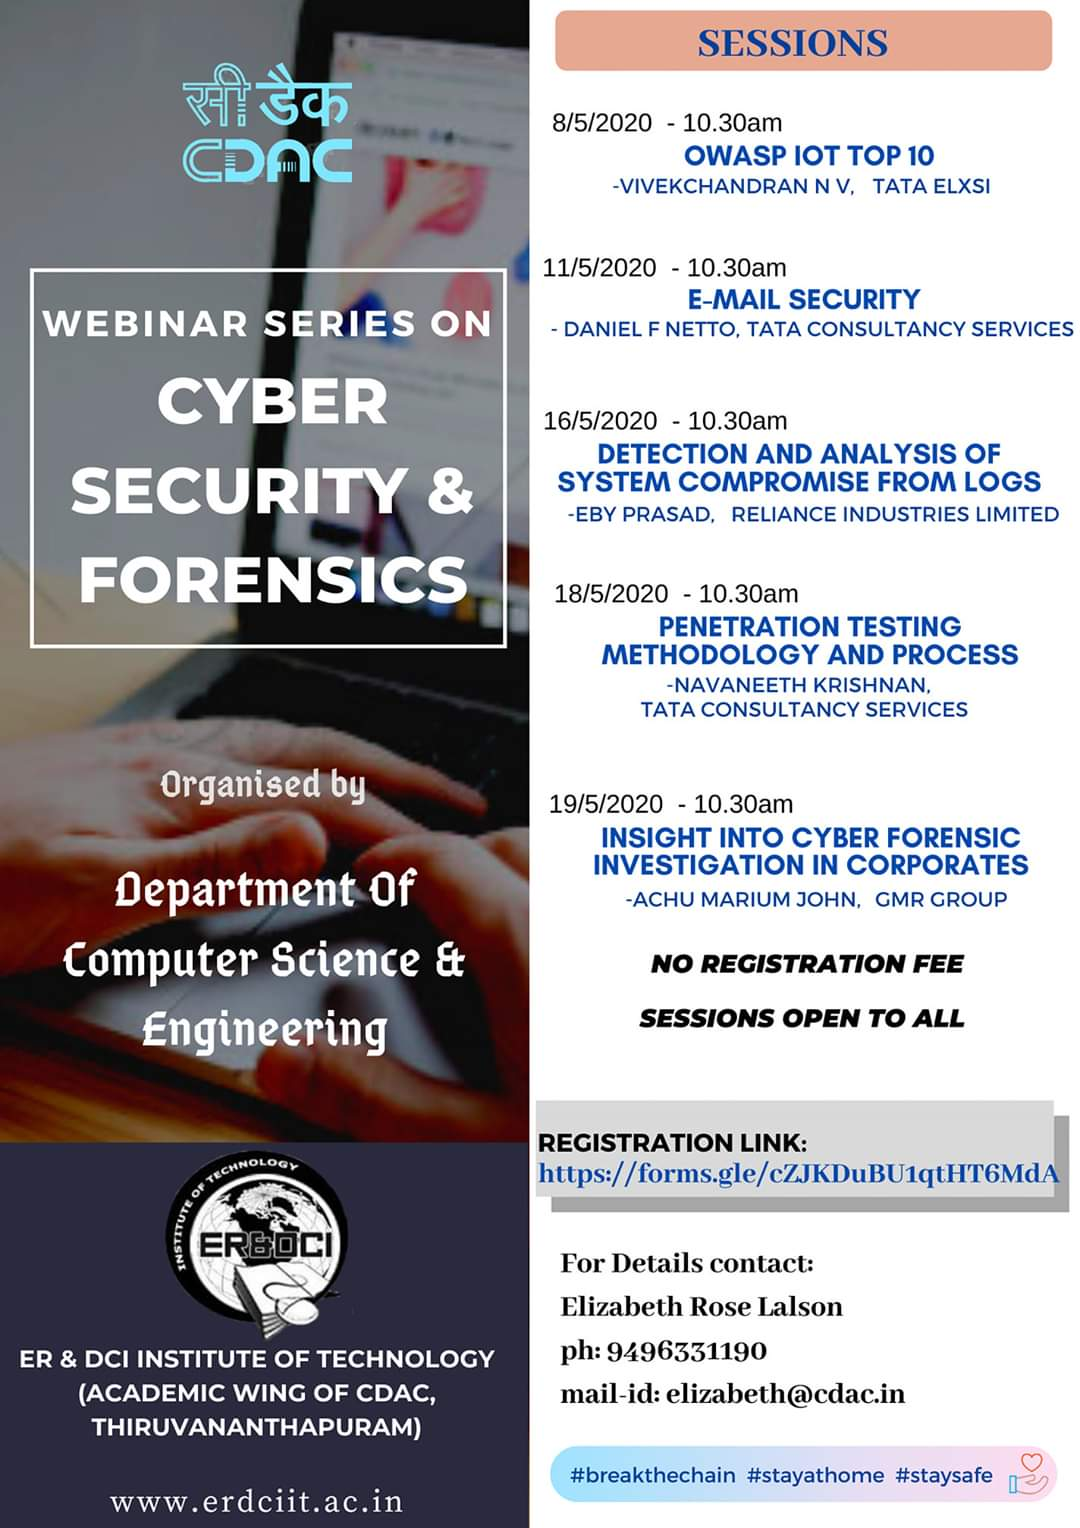 Webinar series on Cyber Security and Forensics